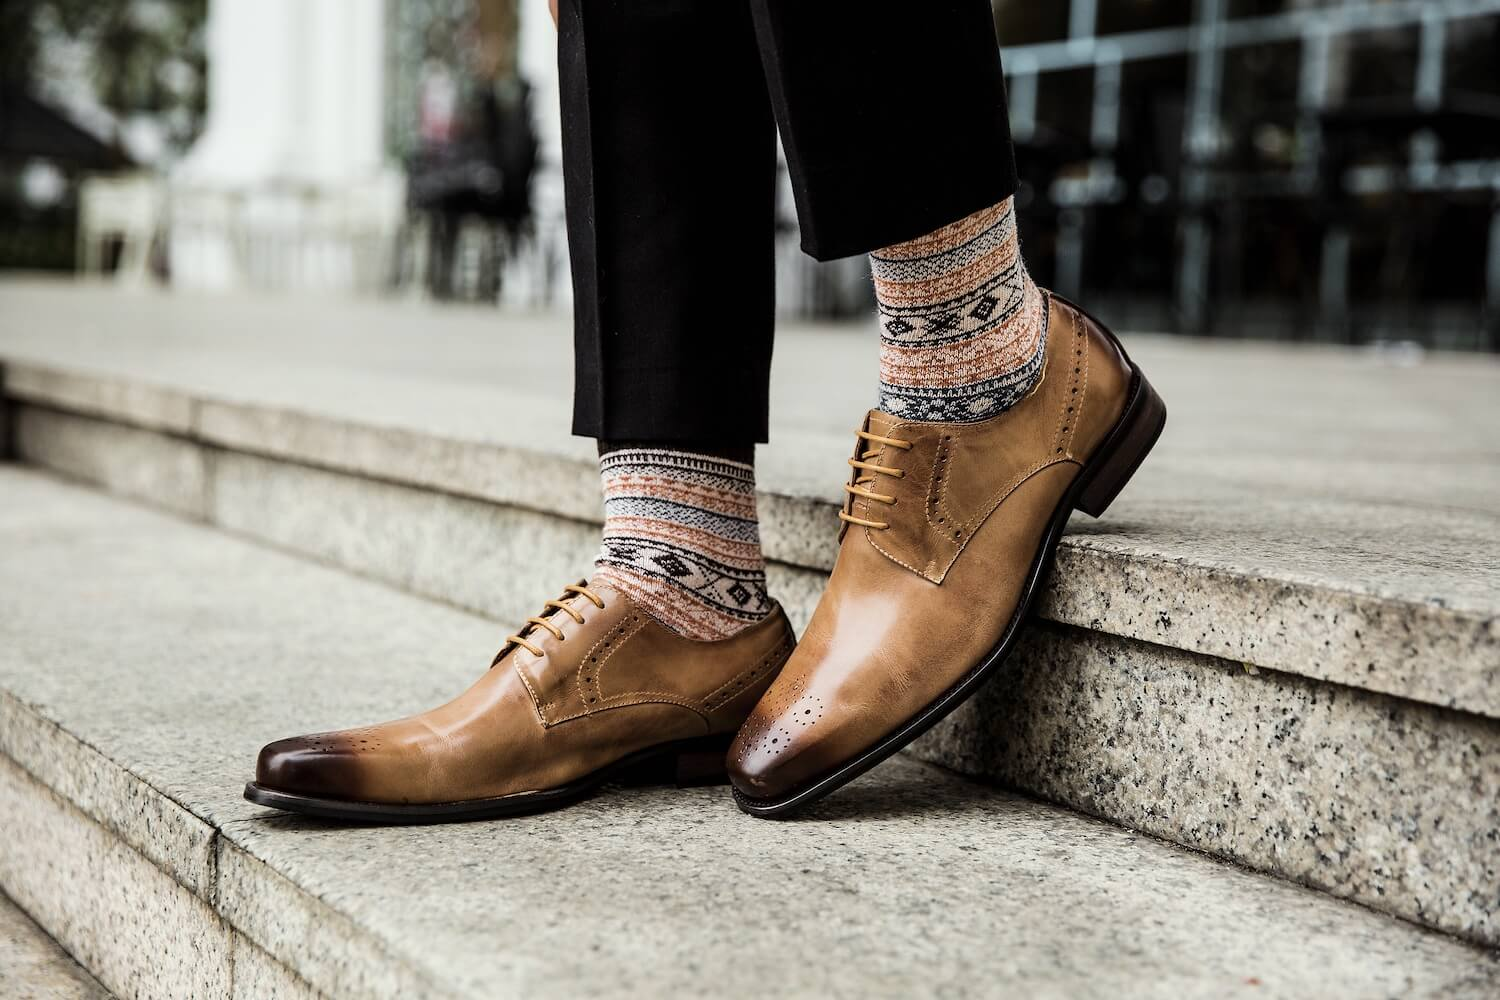 Long Skinny-toed Brown Shoe with a Little Brogue Detailing on Point of Toe